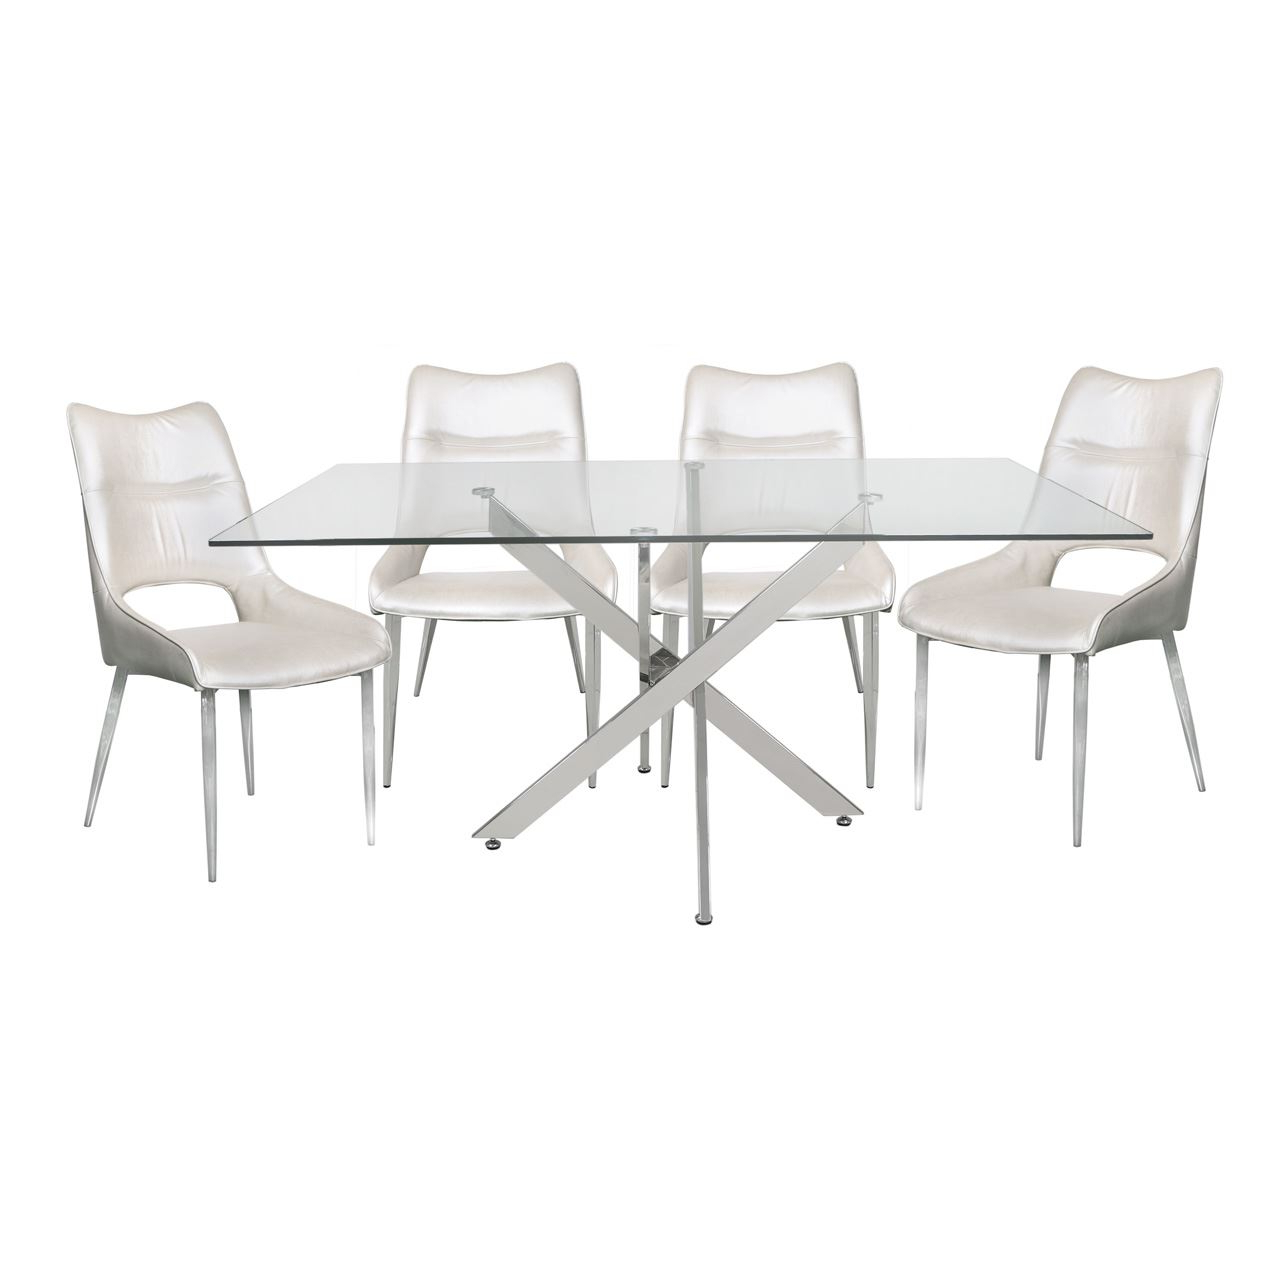 Details About Tempered Glass Steel Chrome Rectangular Dining Table And 4  White Adelaide Chairs throughout 2020 Chrome Dining Tables With Tempered Glass